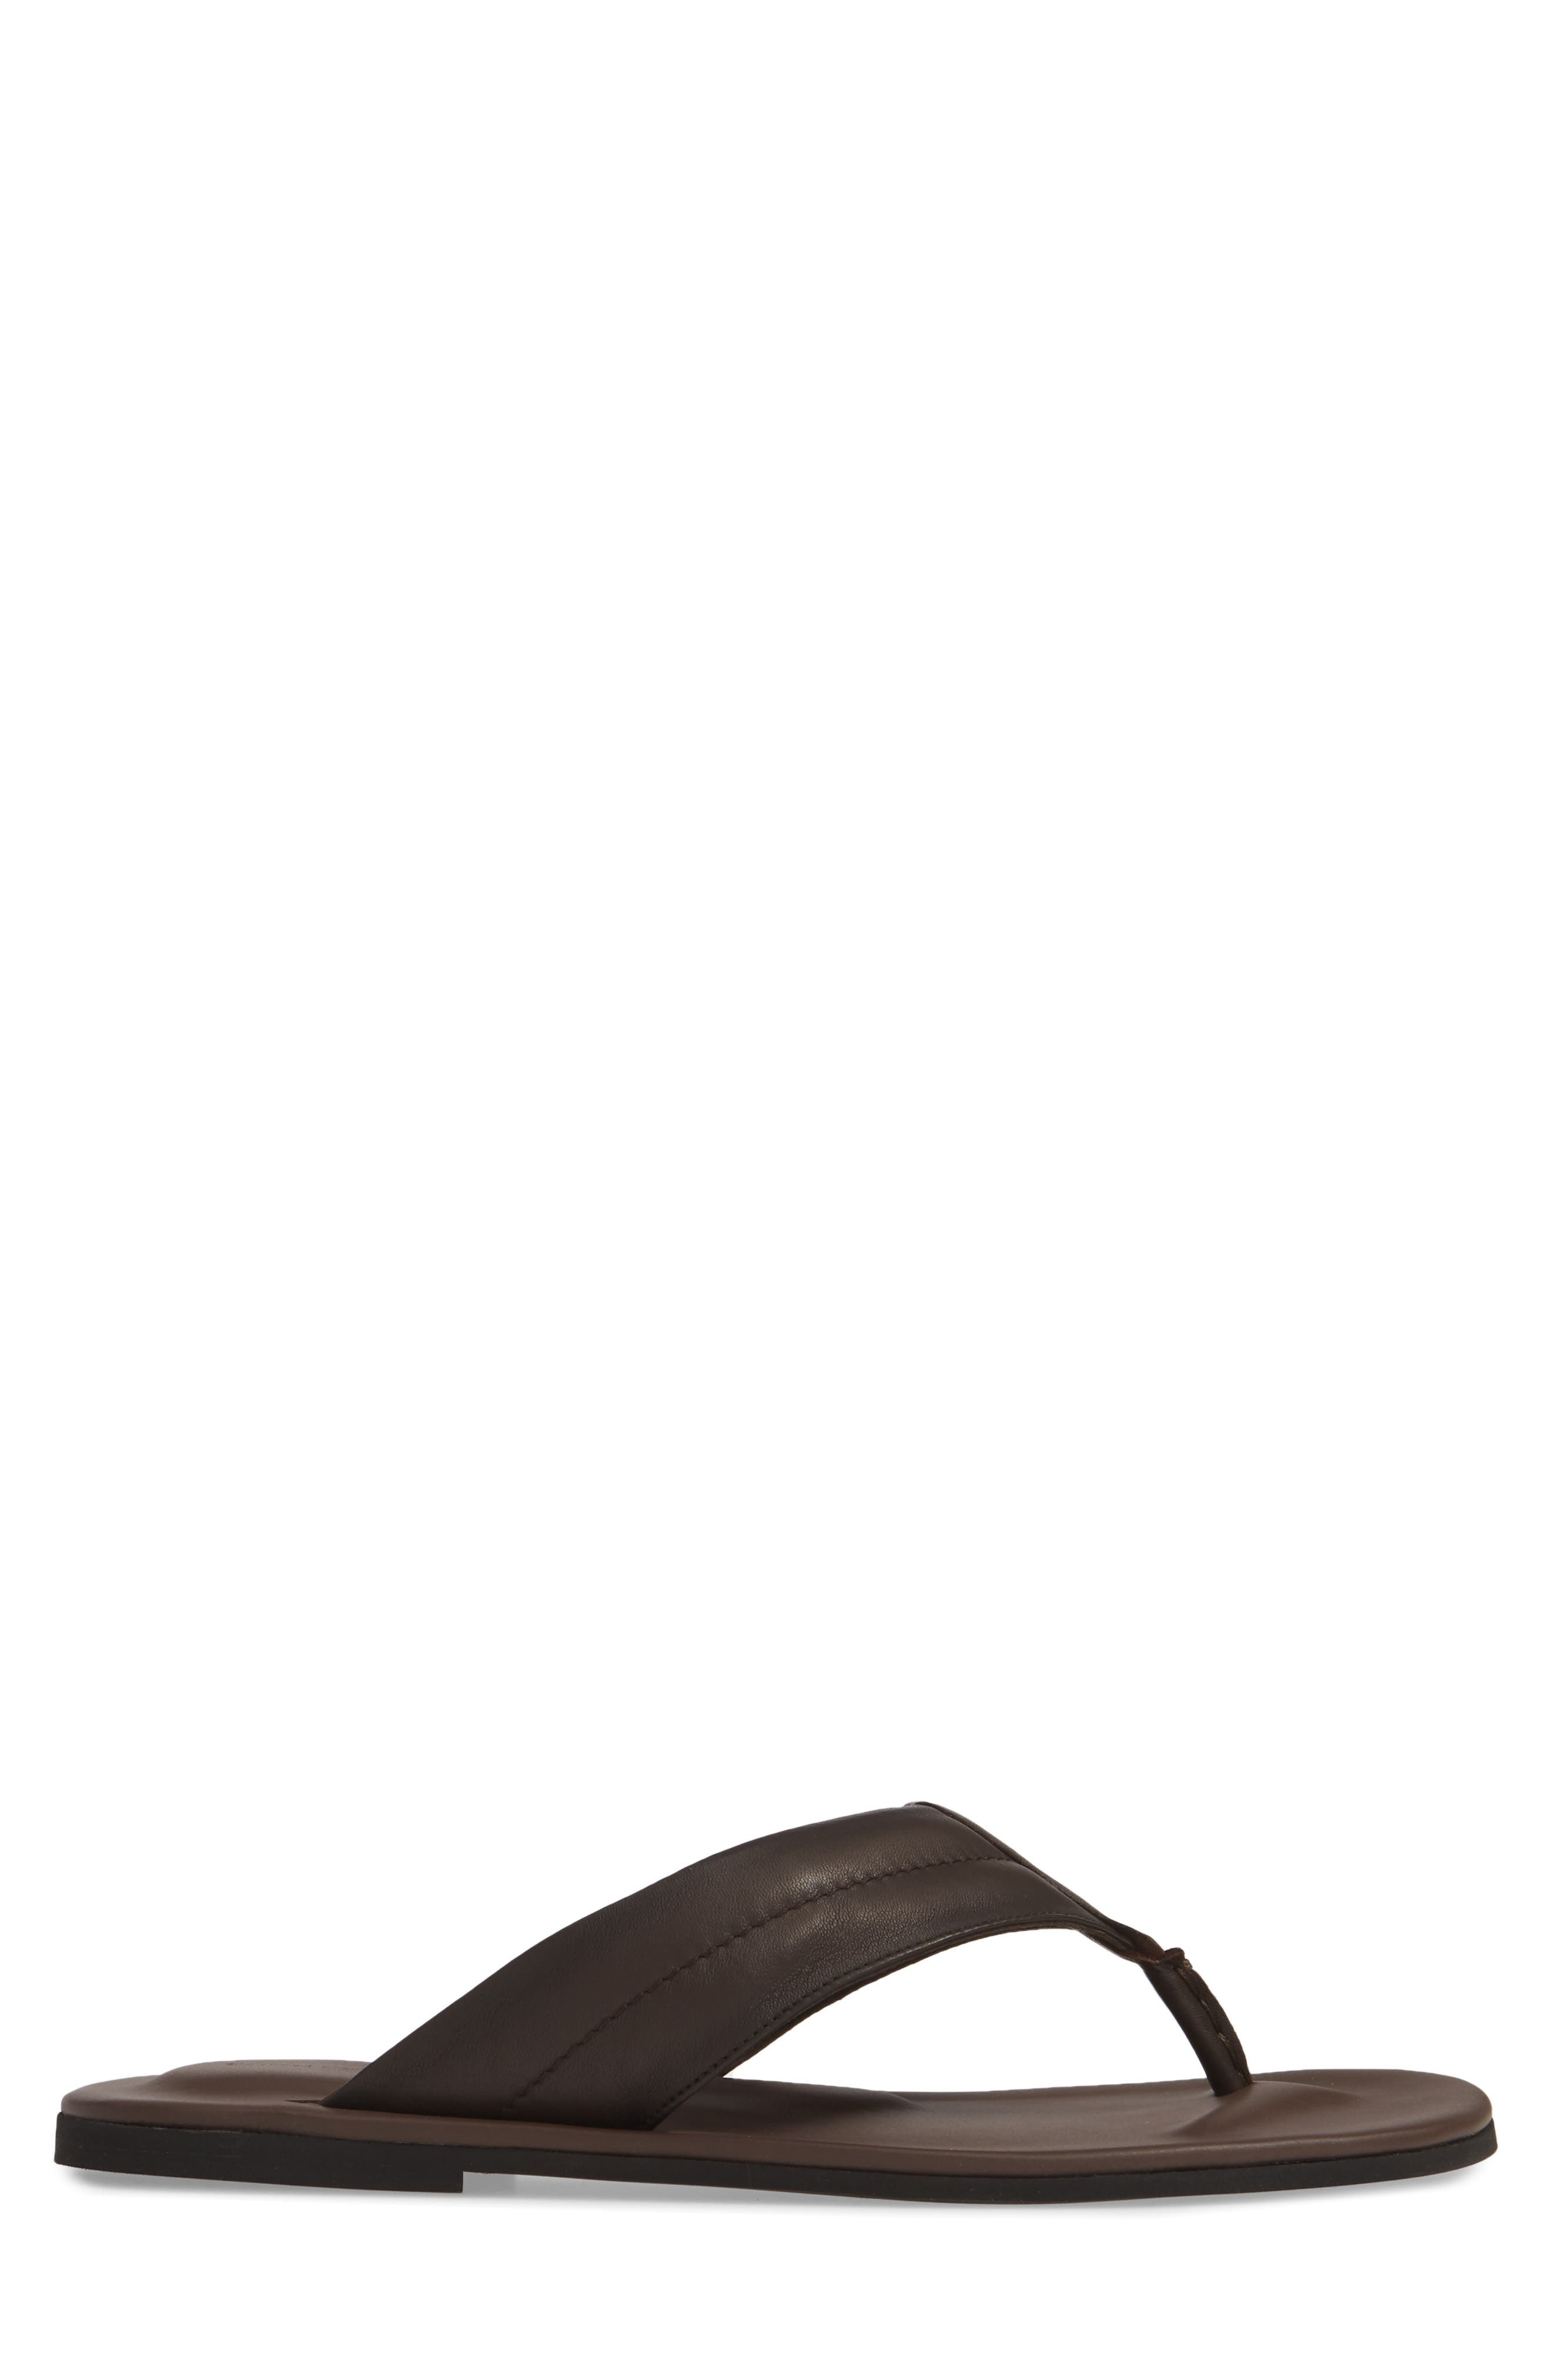 TO BOOT NEW YORK, Grande Flip Flop, Alternate thumbnail 3, color, BROWN LEATHER